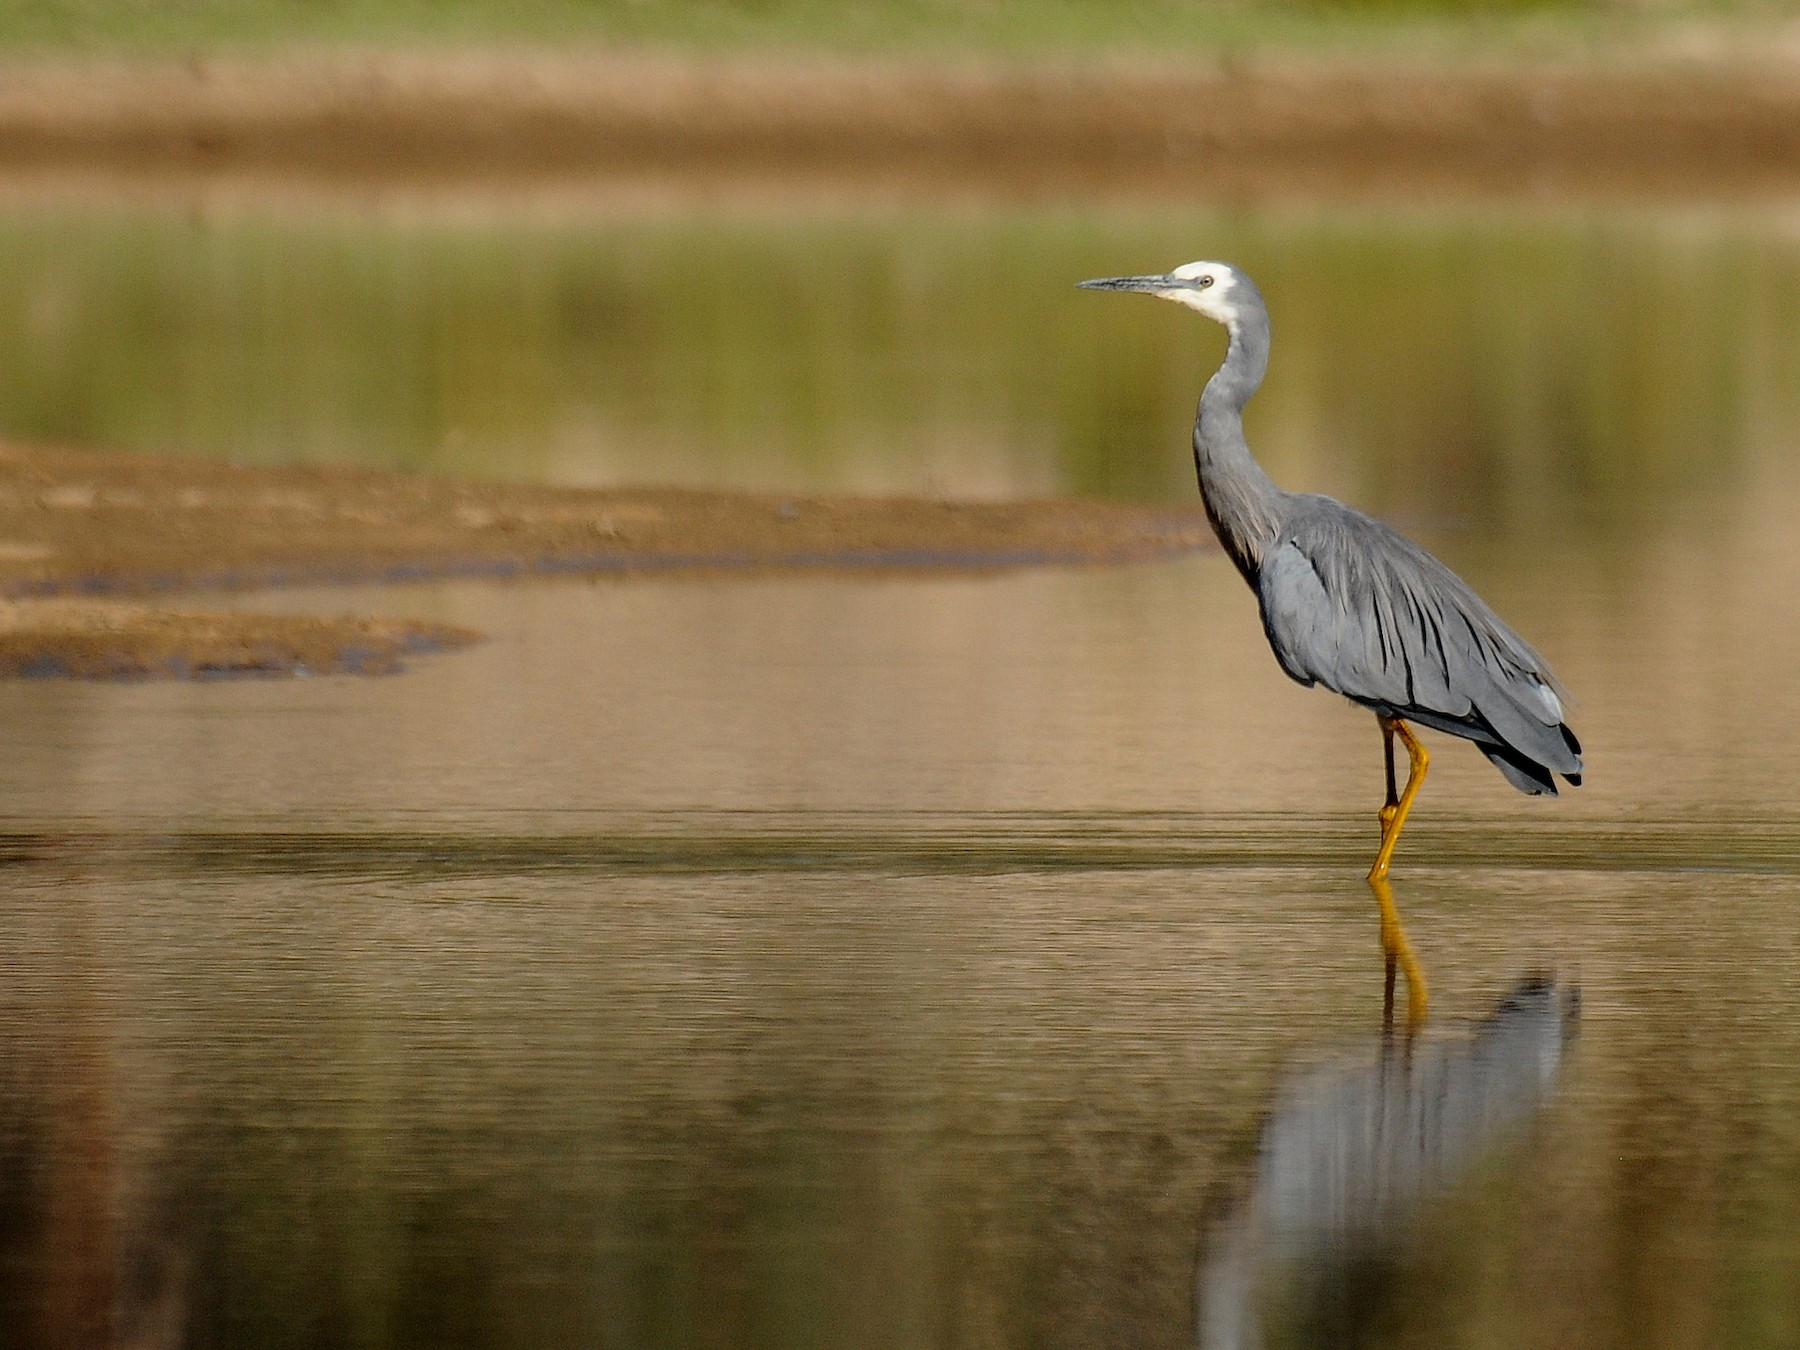 White-faced Heron - Diana Padron